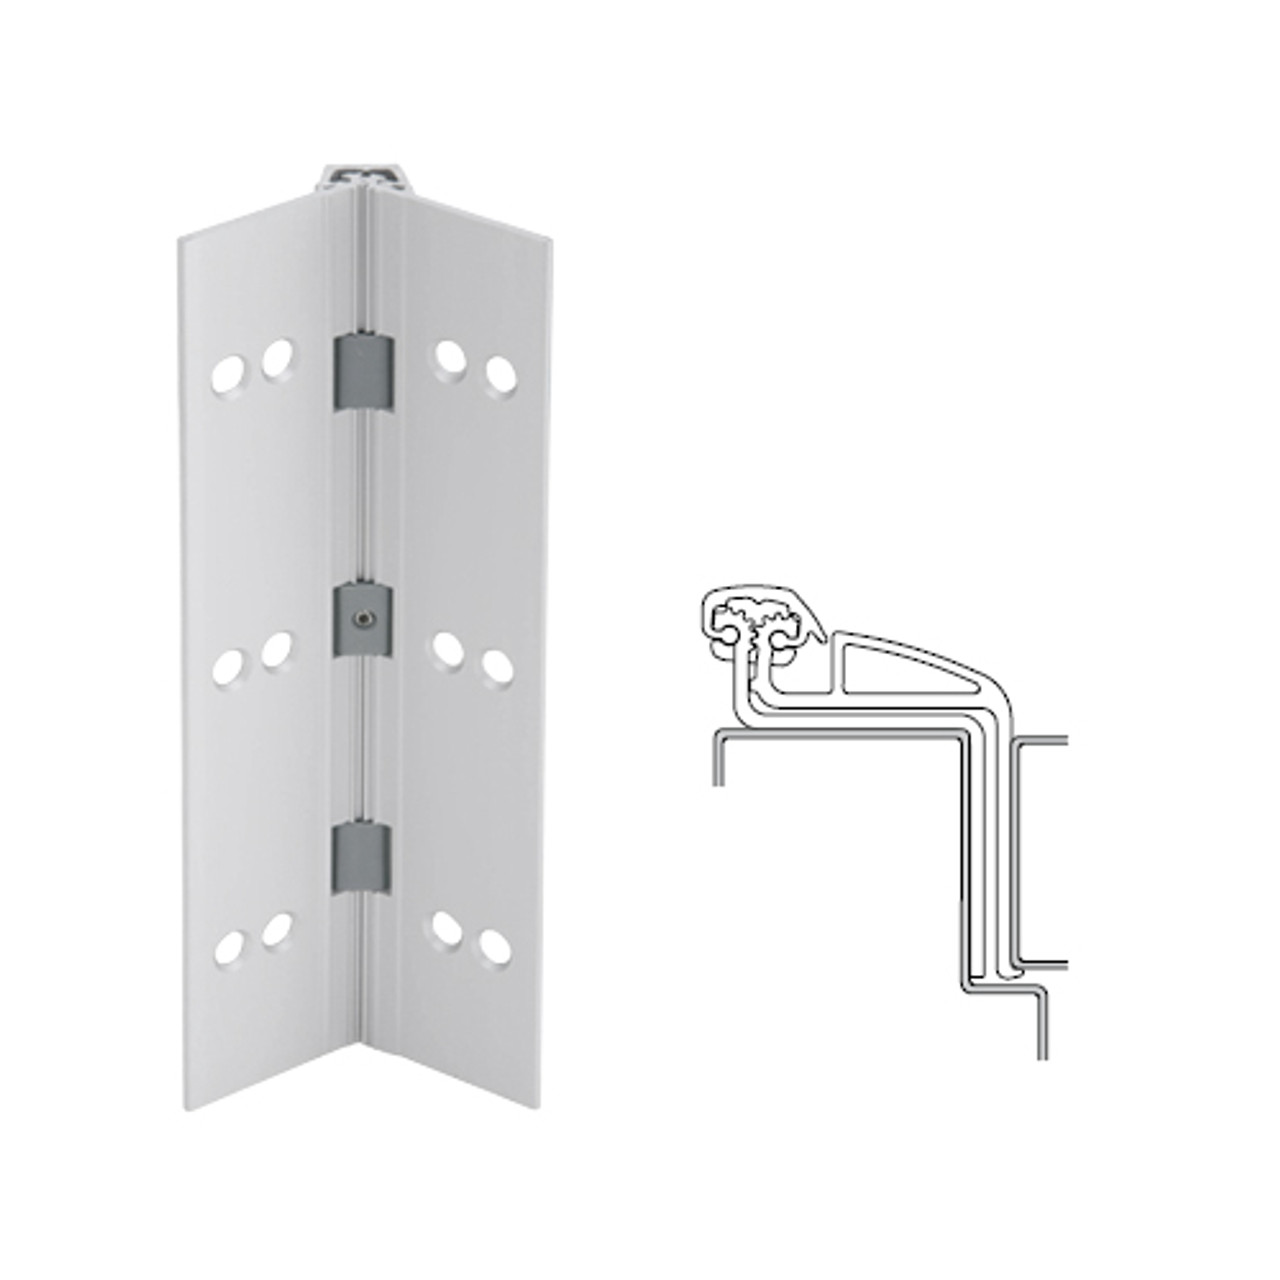 041XY-US28-85-SECHM IVES Full Mortise Continuous Geared Hinges with Security Screws - Hex Pin Drive in Satin Aluminum